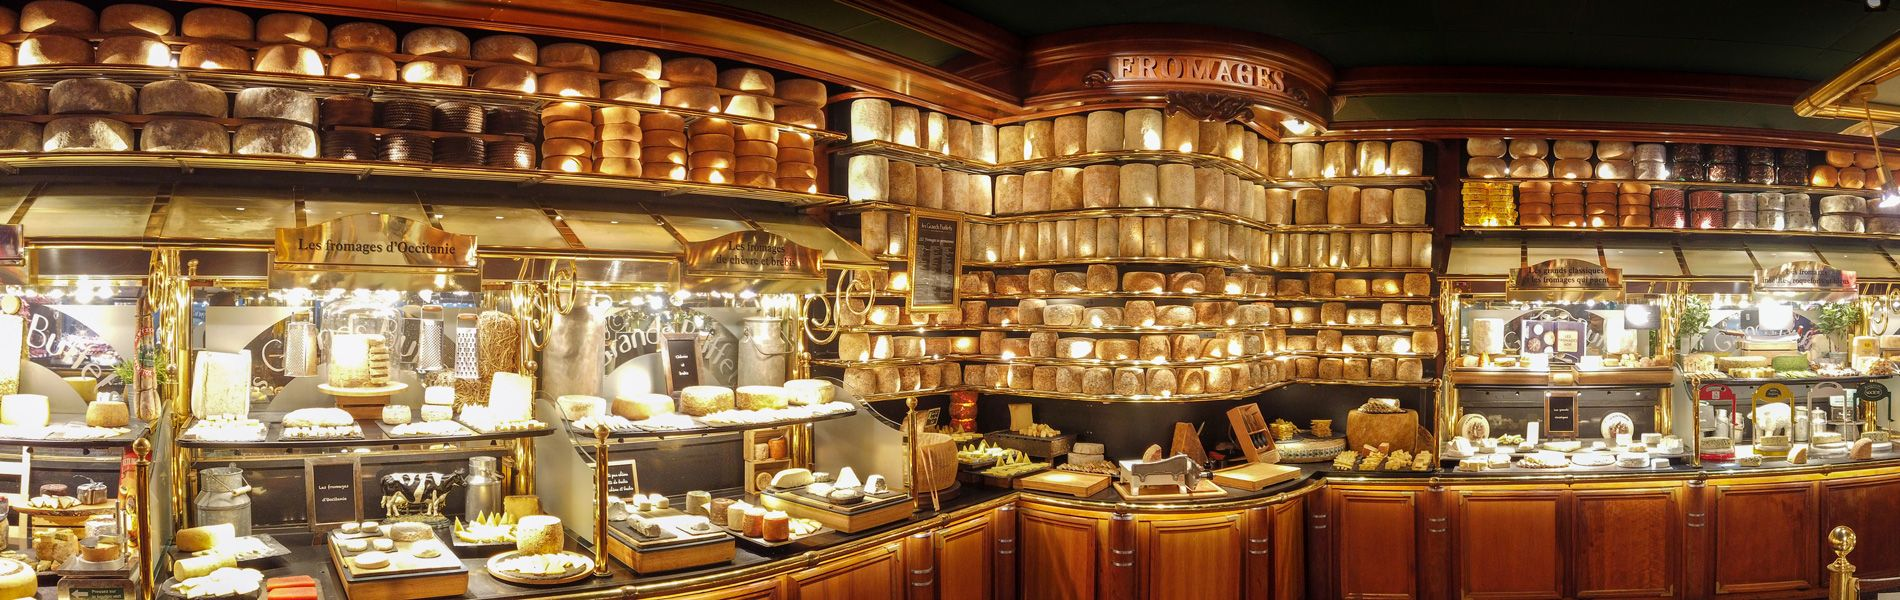 plateau fromages les grand buffets narbonne